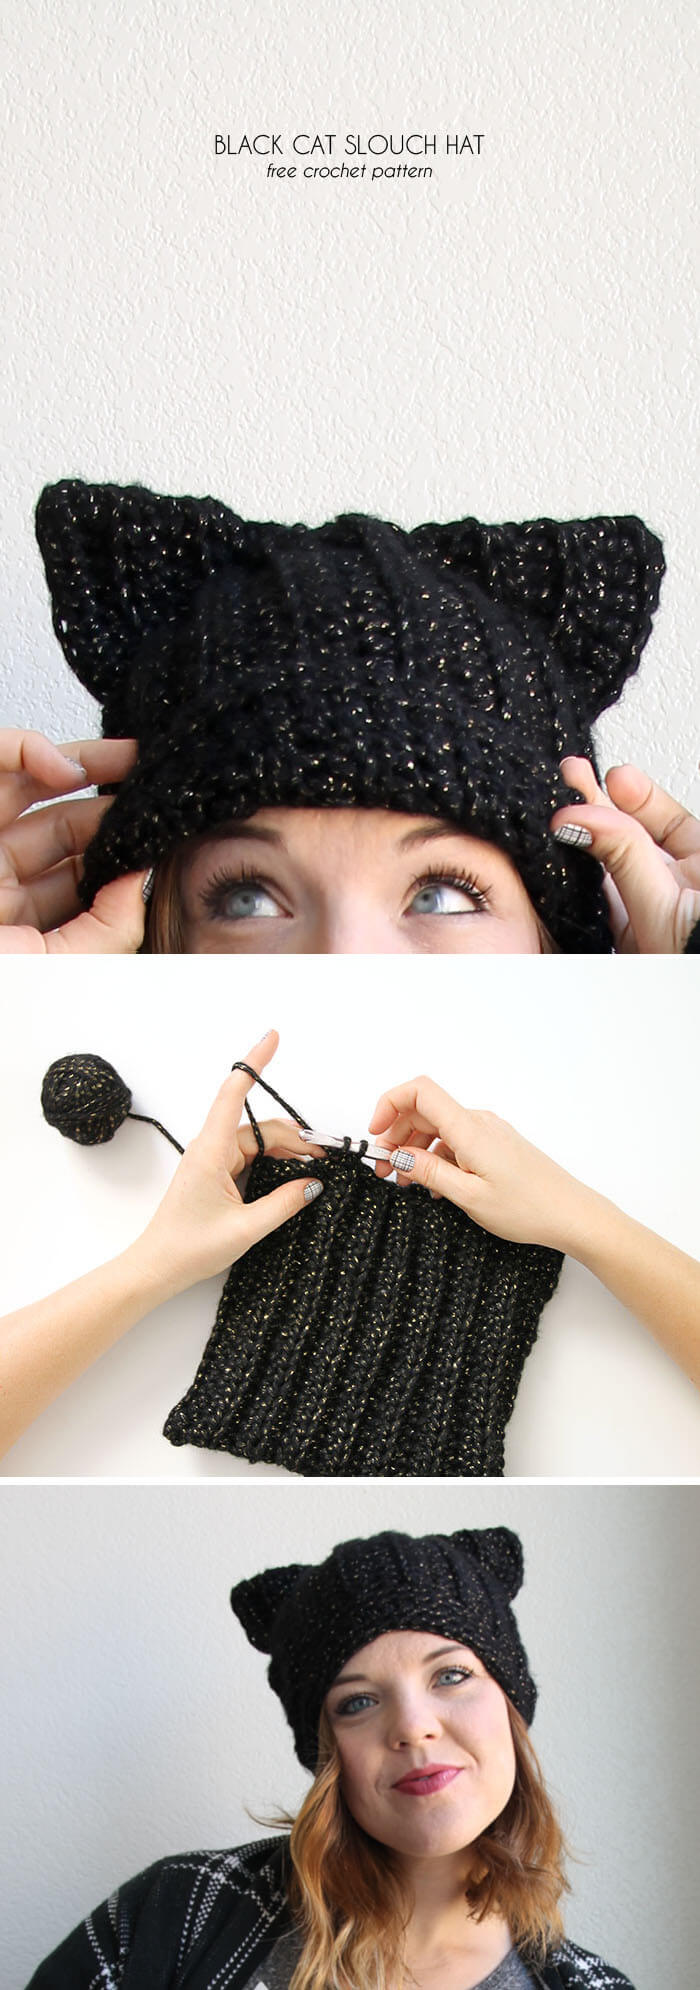 animal ear hat knitting pattern 04